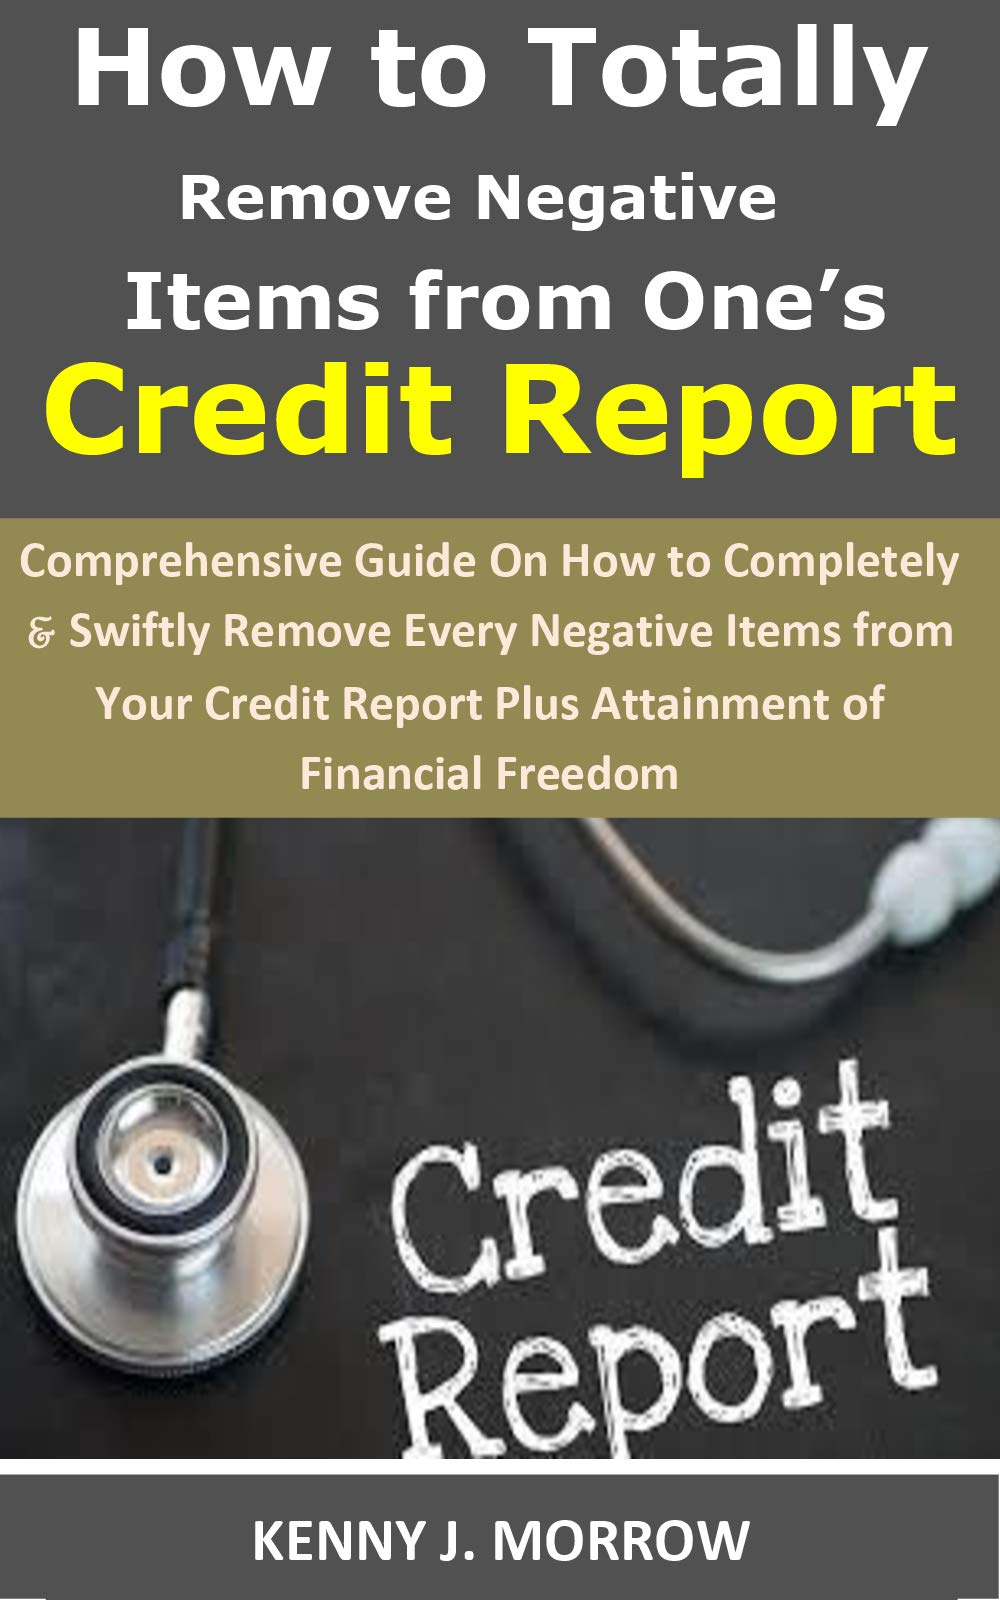 How to Totally Remove Negative Items from One's Credit Report: Comprehensive Guide On How toCompletely&Swiftly Remove Every Negative Items from Your Credit Report Plus Attainment of Financial Freedom